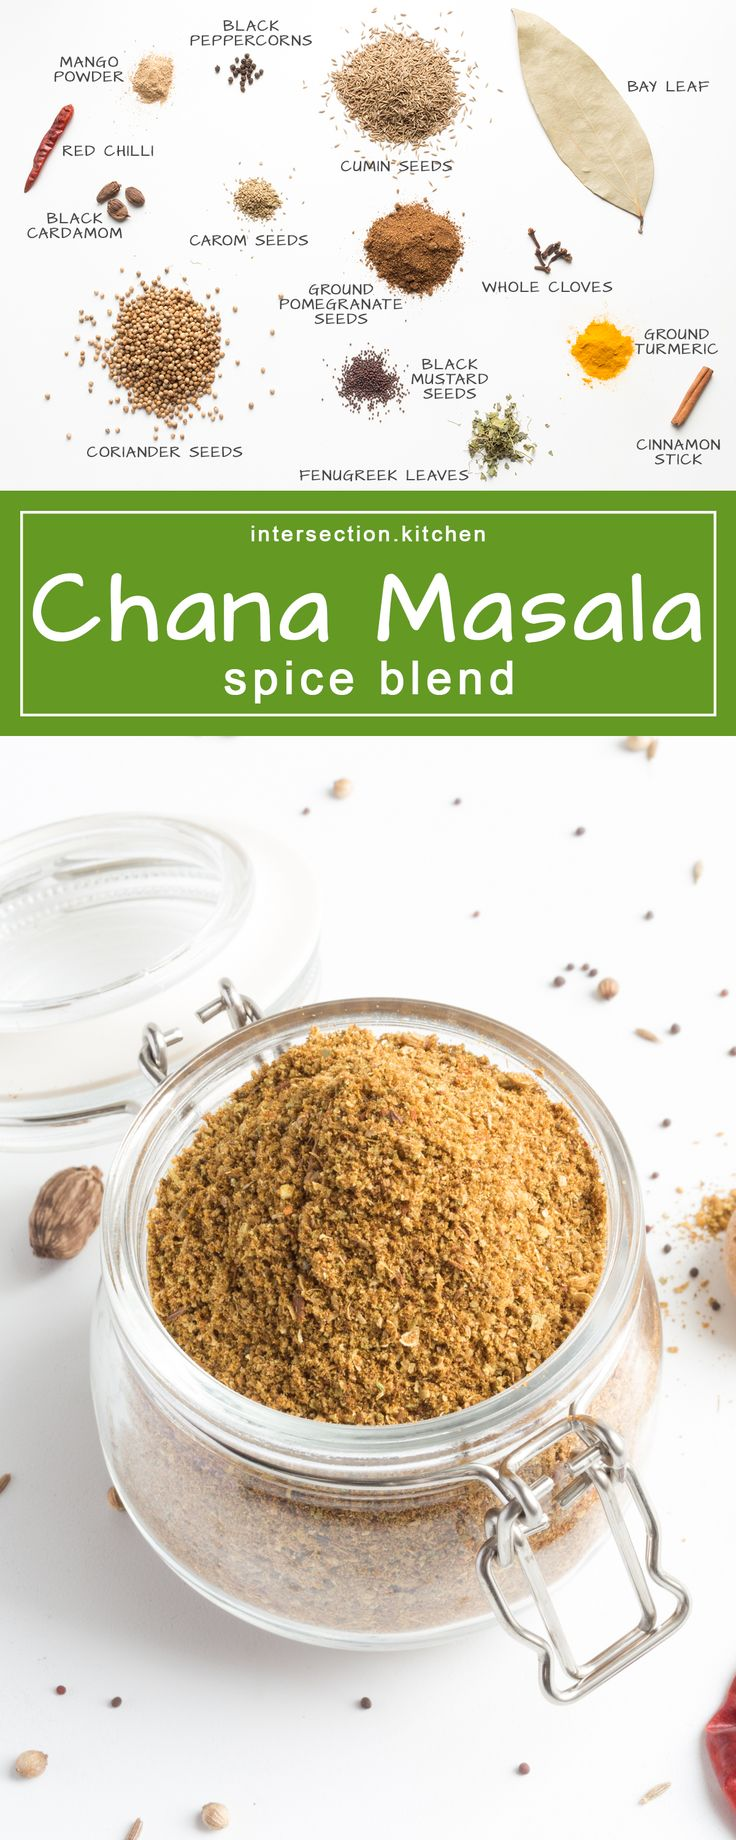 Chana Masala Spice Blend. Perfect blend of spices for a delicious, tangy, and not too hot chickpea curry. #chana-masala #spices #recipe